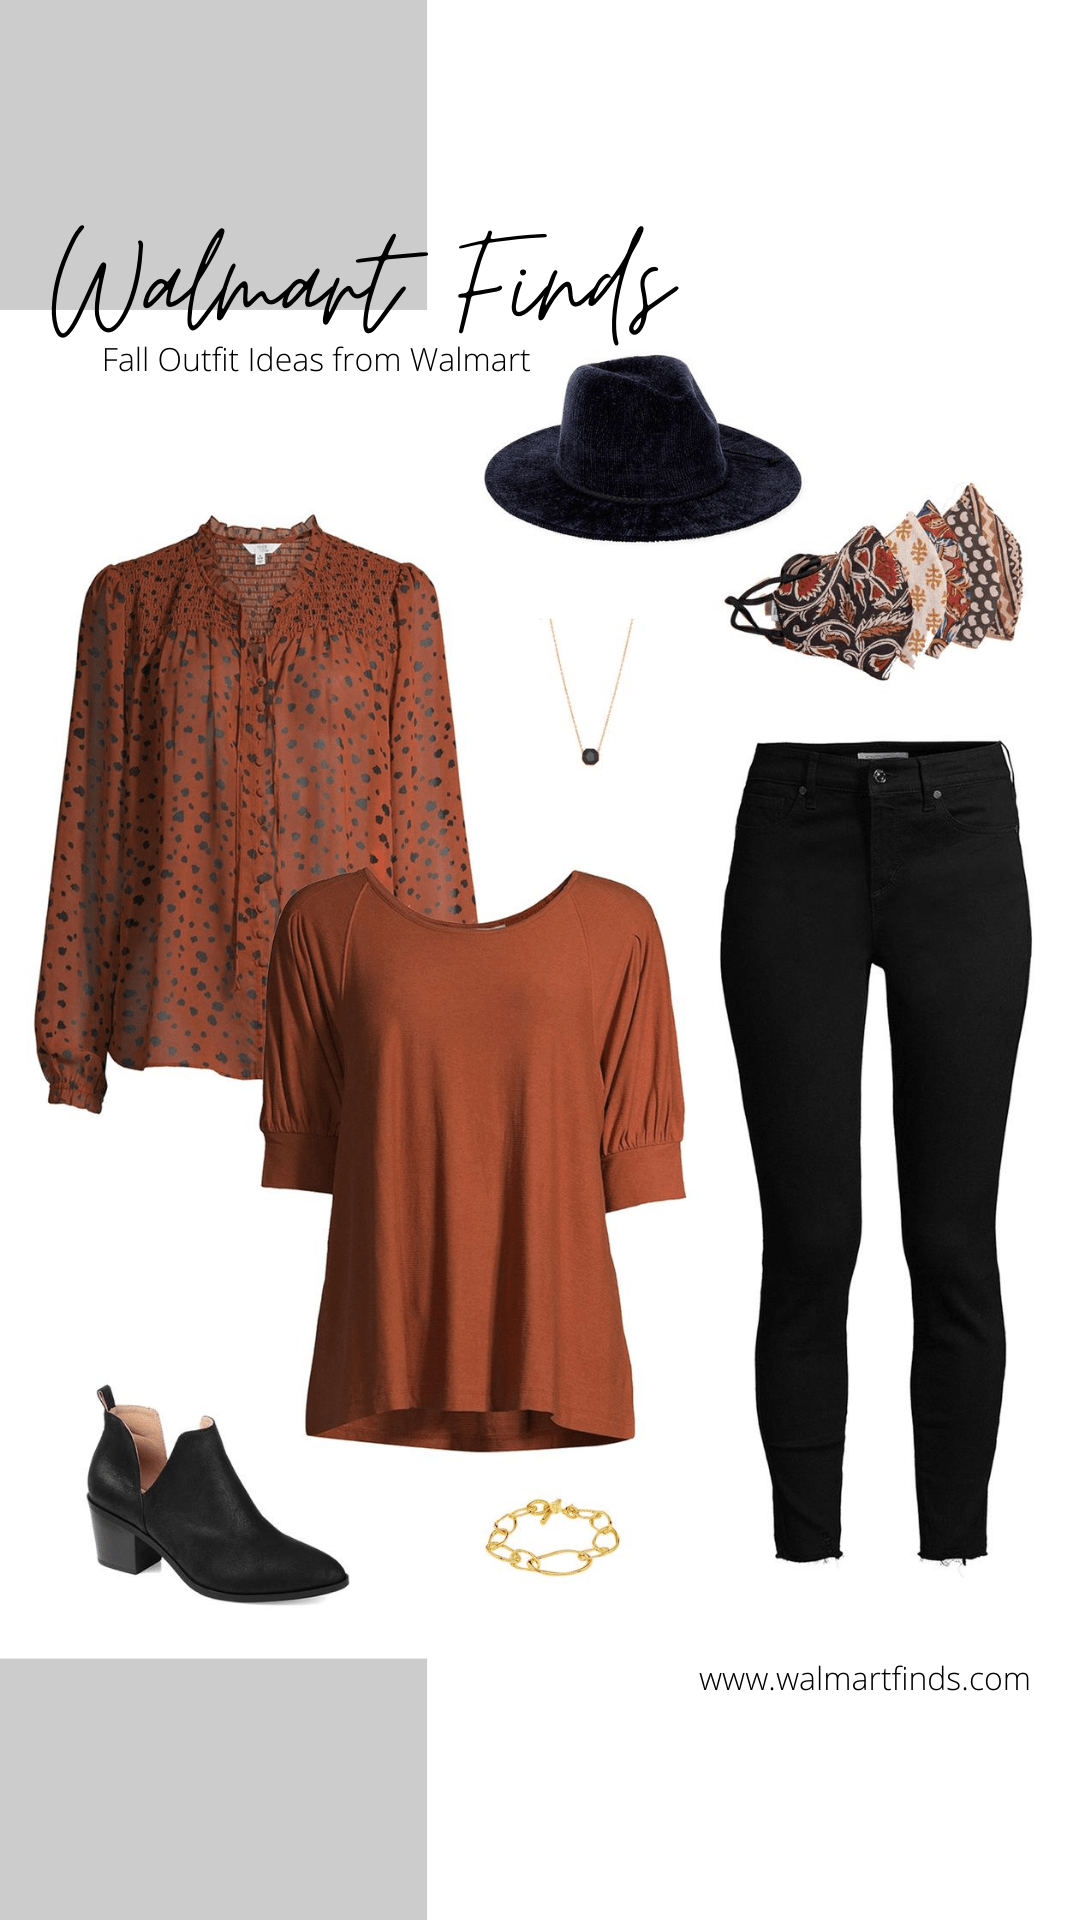 fall outfit ideas from walmart - time and tru peasant top, fedora + new face masks